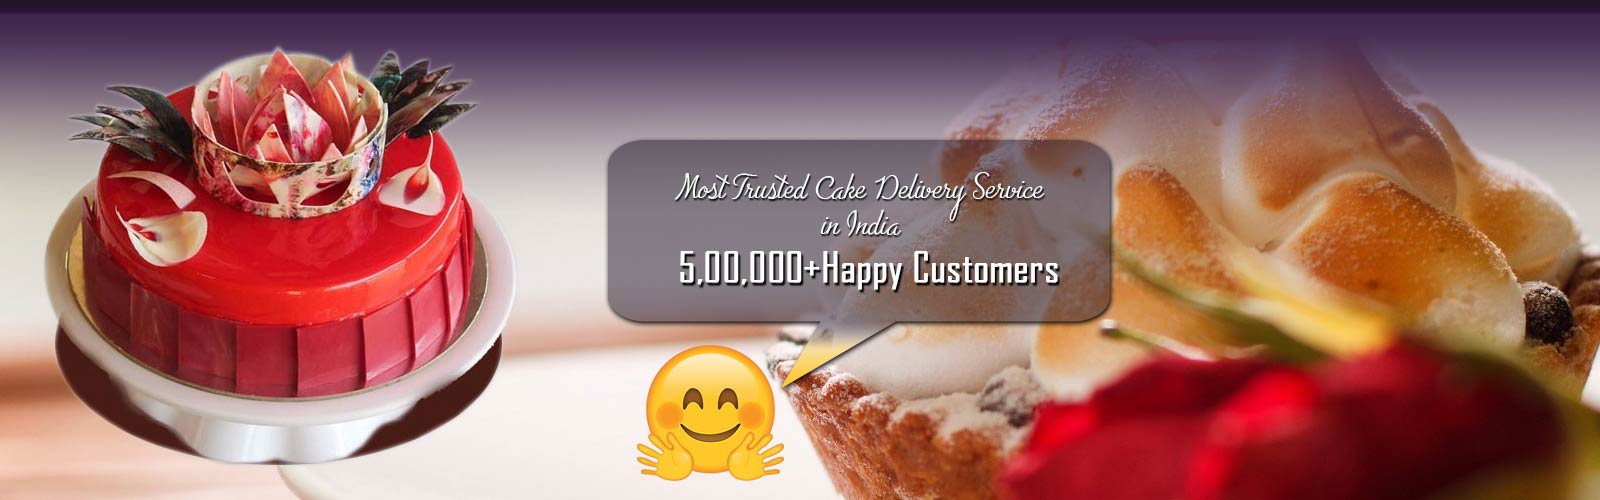 Terrific Online Cake Delivery India Send Cakes Online In India Birthday Birthday Cards Printable Opercafe Filternl